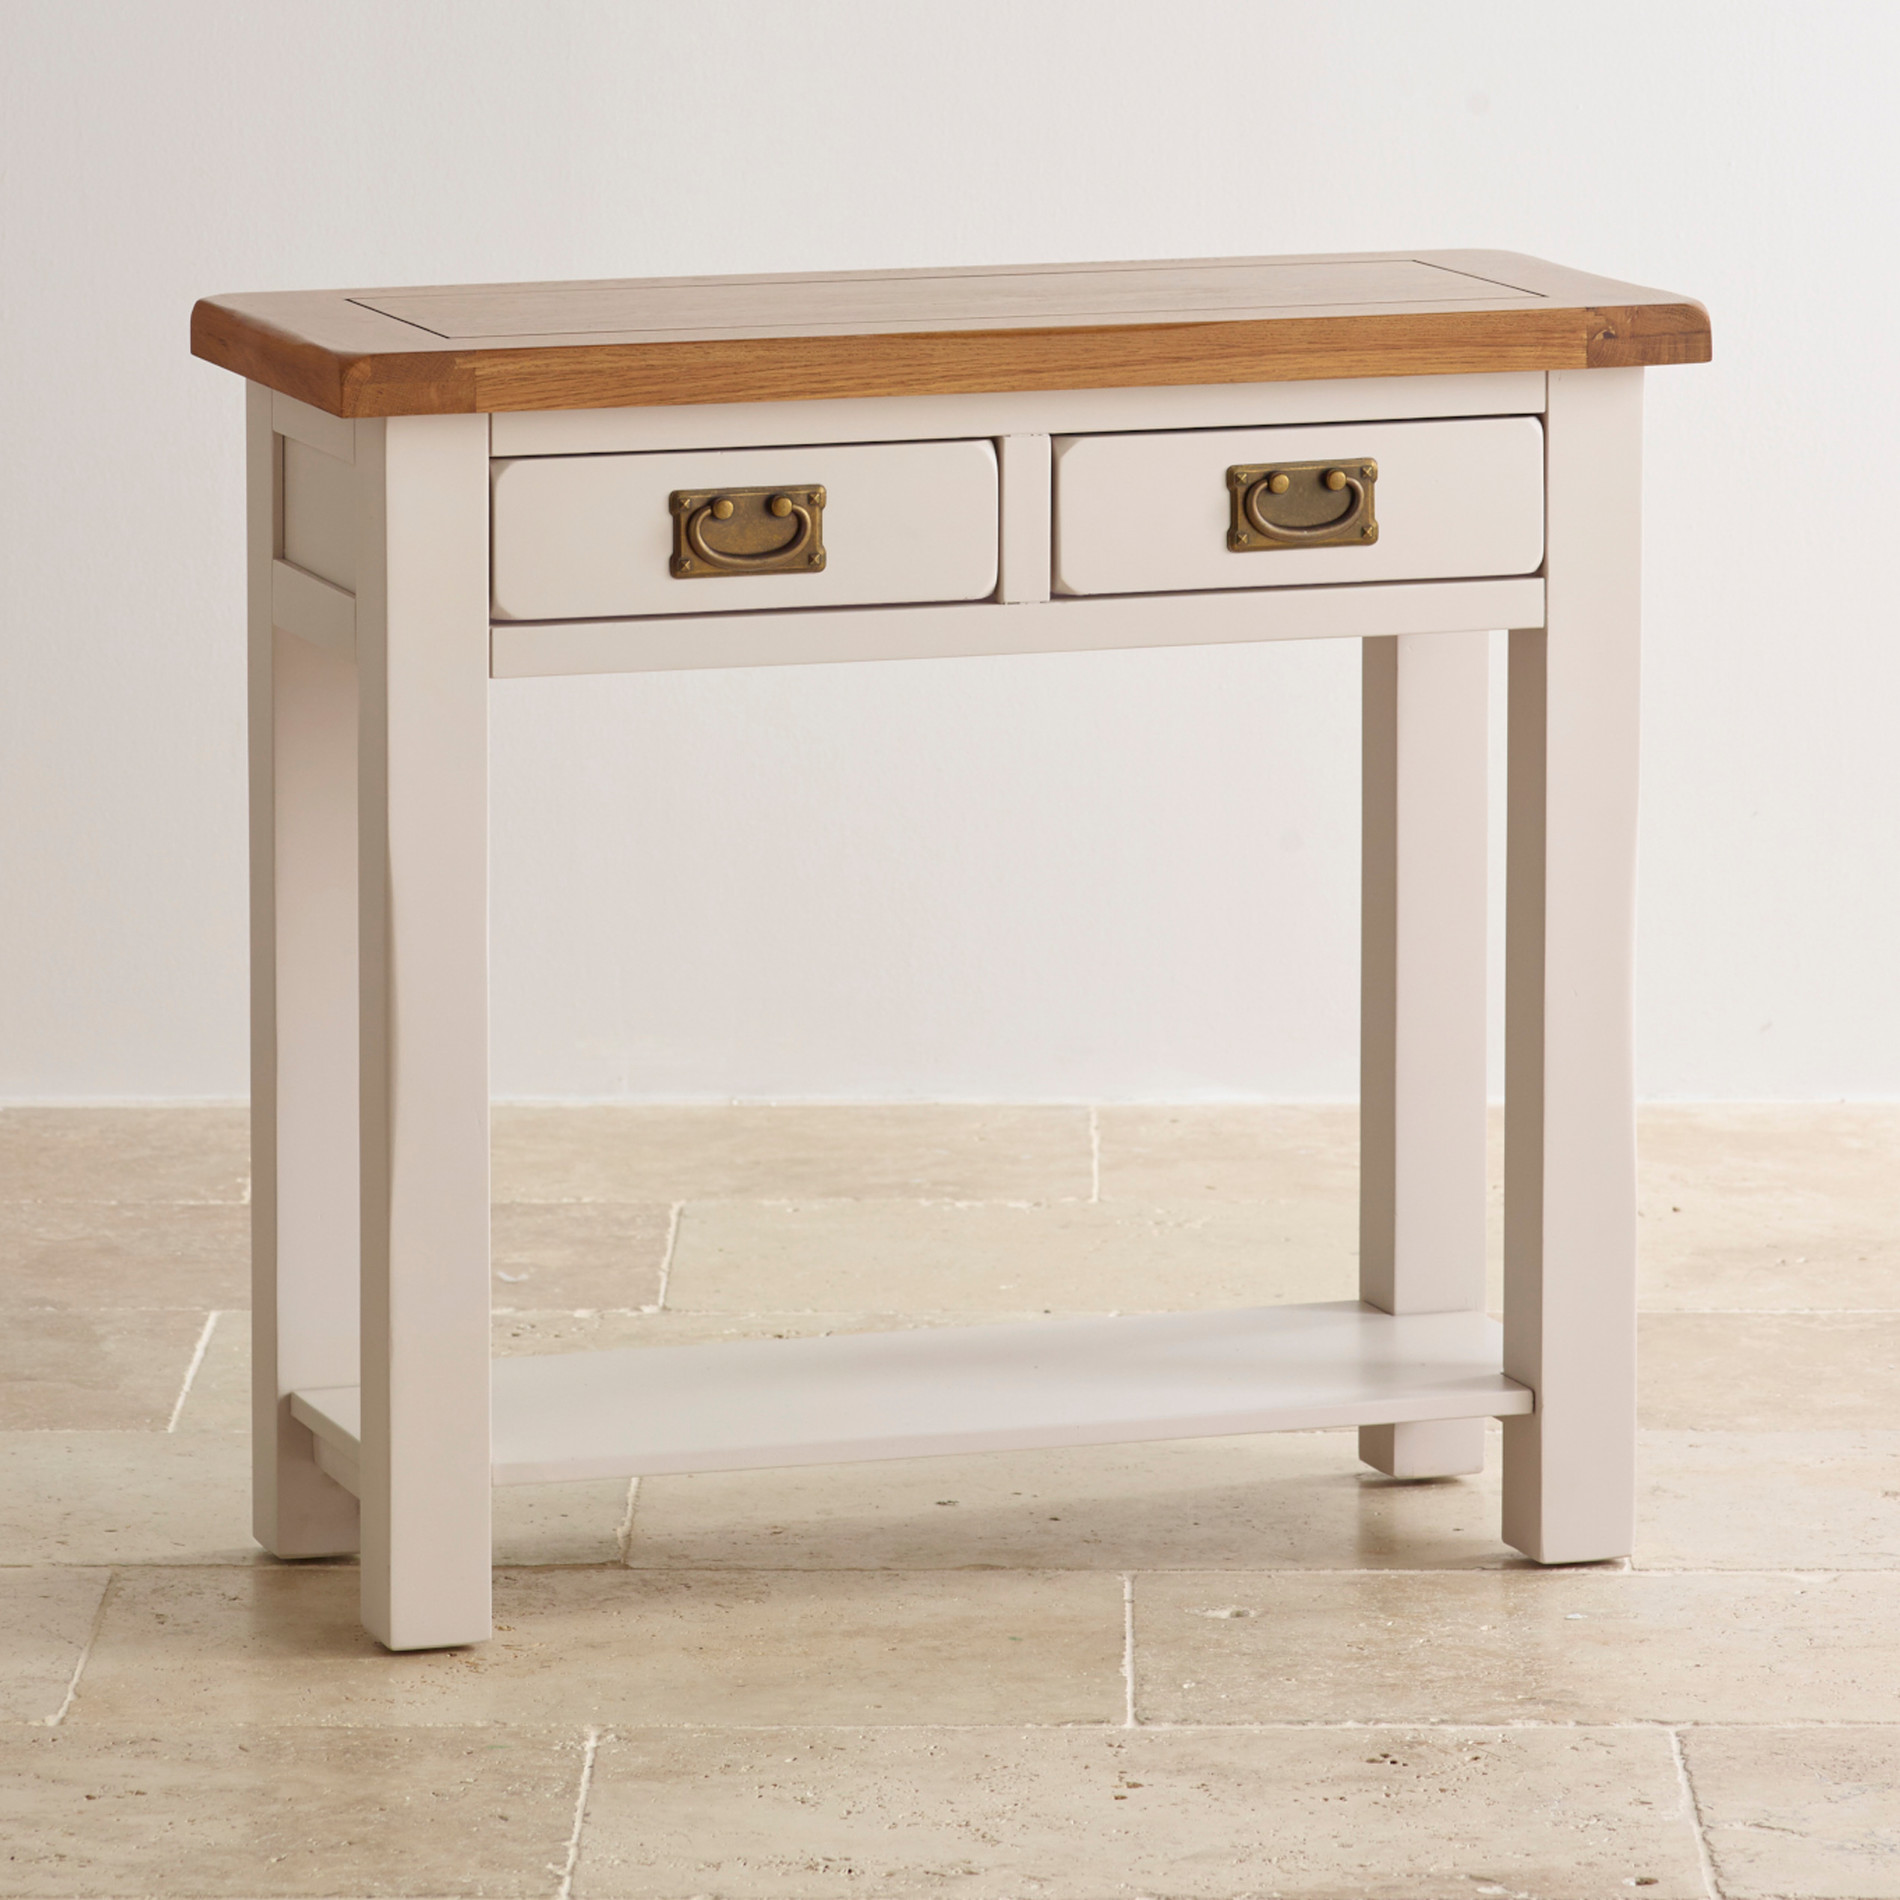 Kemble painted drawer console table in rustic solid oak